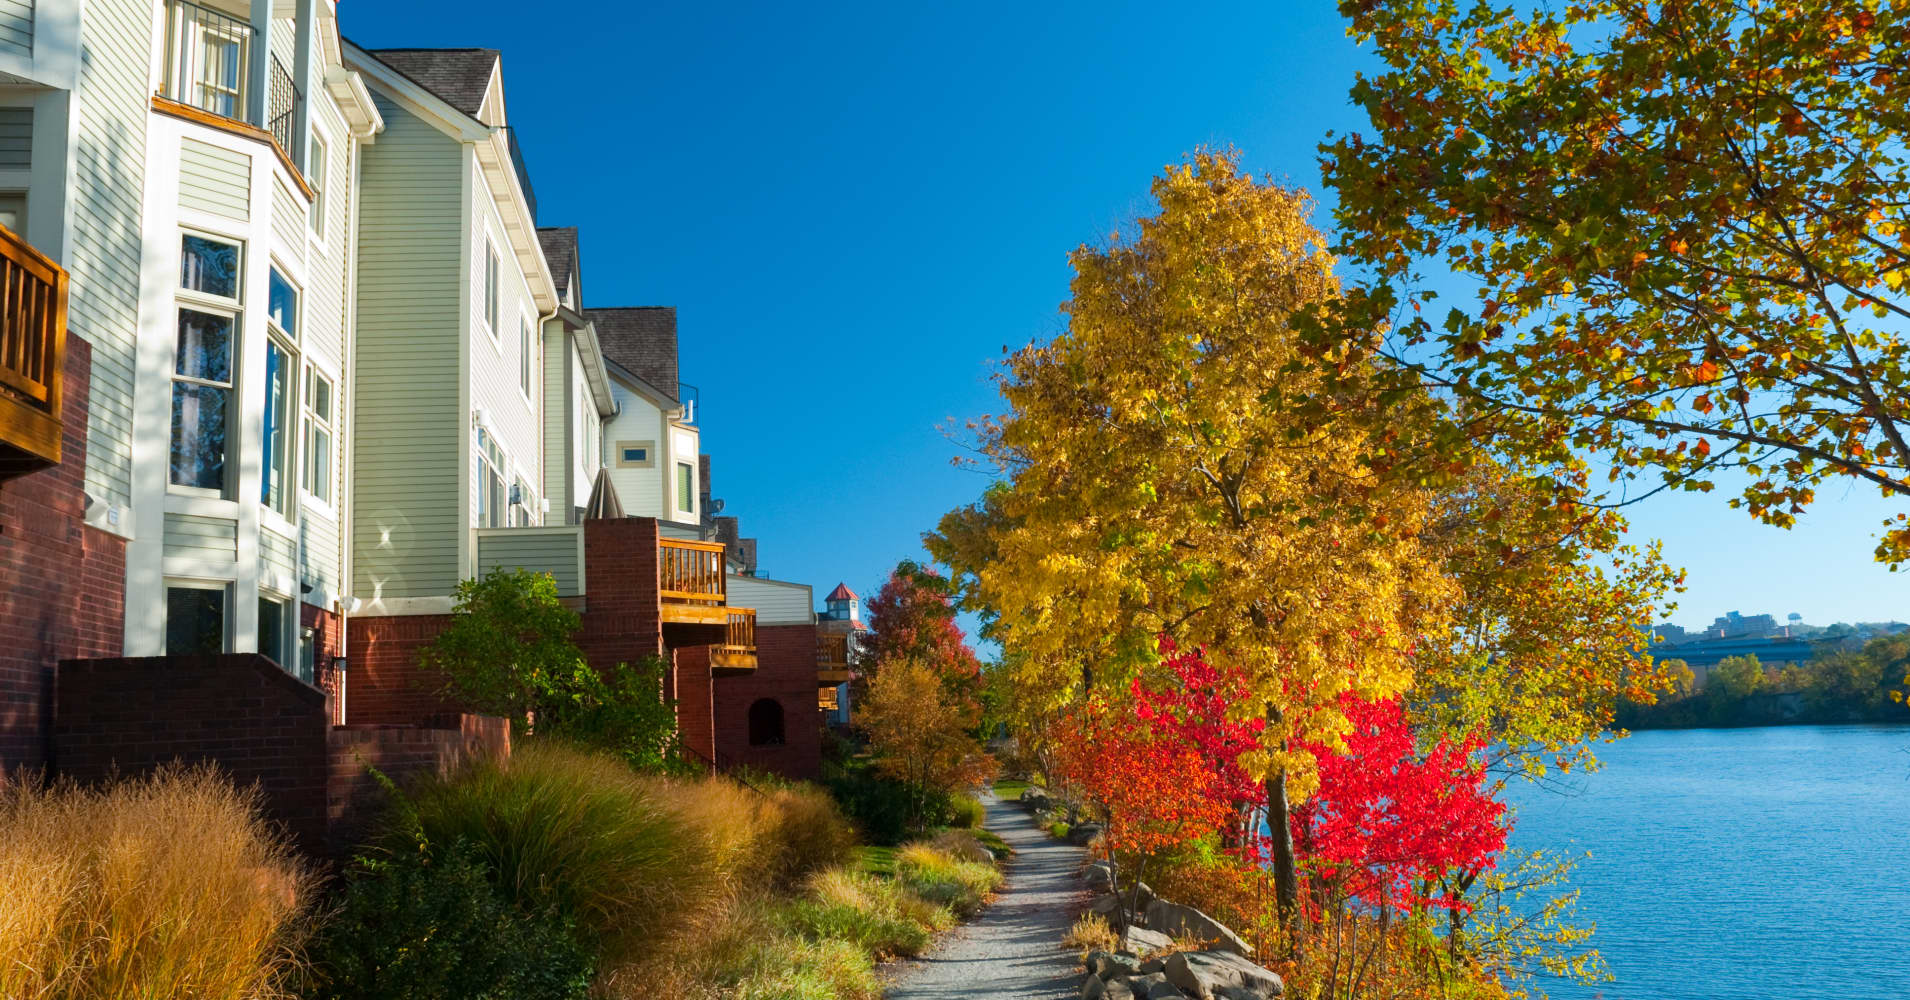 Houses, a pathway, the Allegheny River, and Autumn trees in Washington's Landing in Pittsburgh.